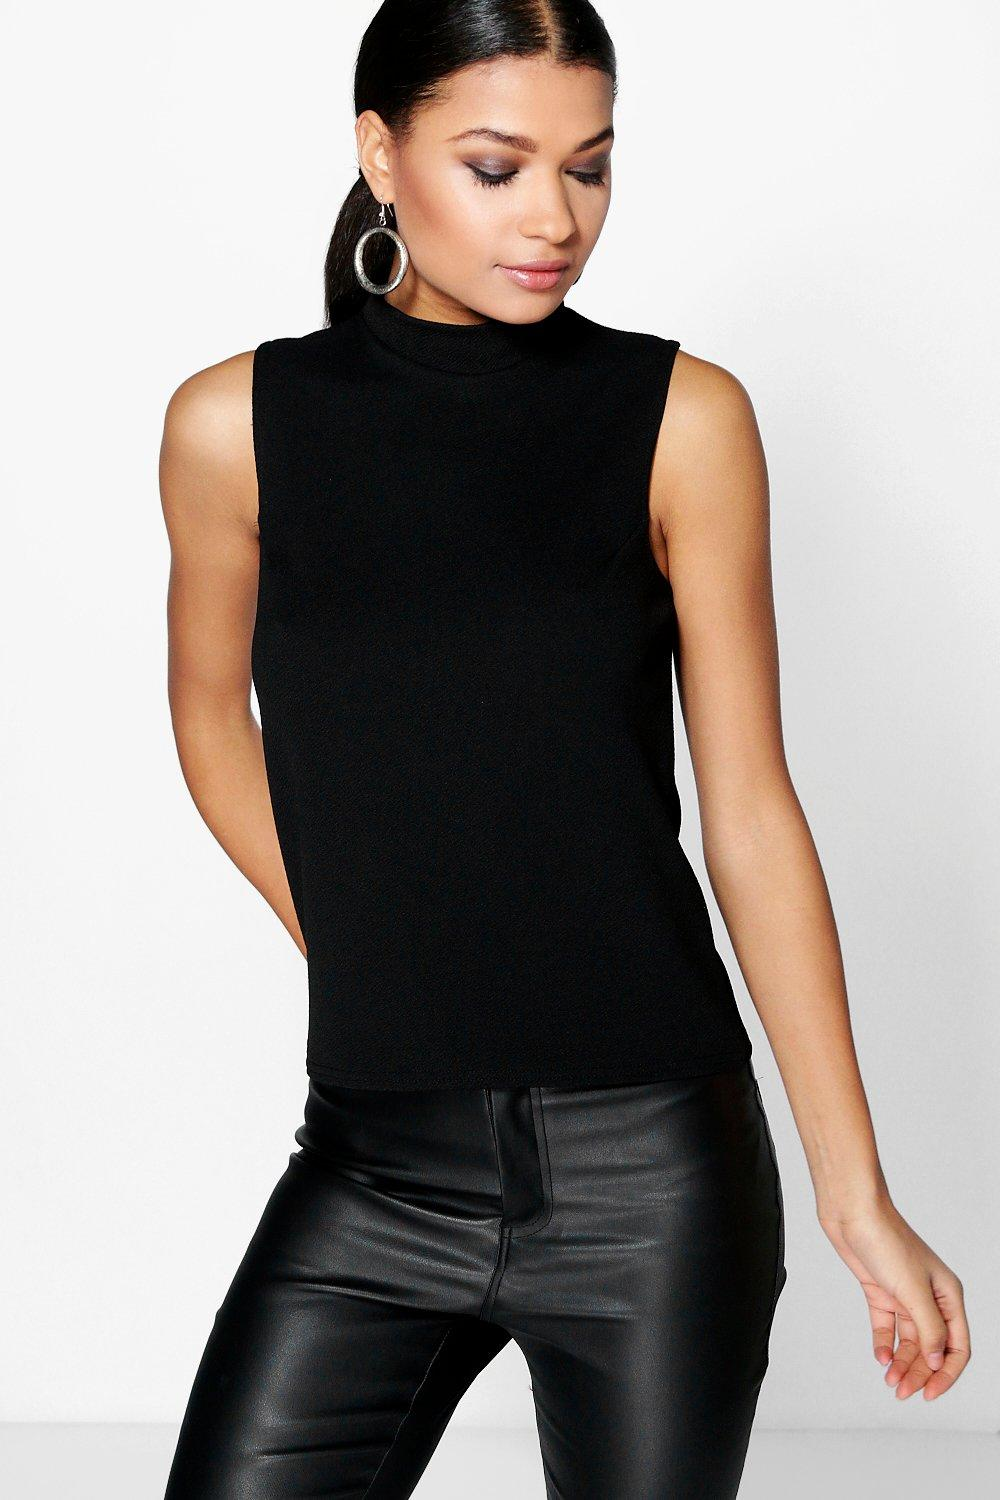 Petite Clothing Sale Explore boohoo's petite clothing sale covering on trend clothing, basics and occasion wear. Treat yourself to clothing dresses, tops, jackets and pants that fit just right!